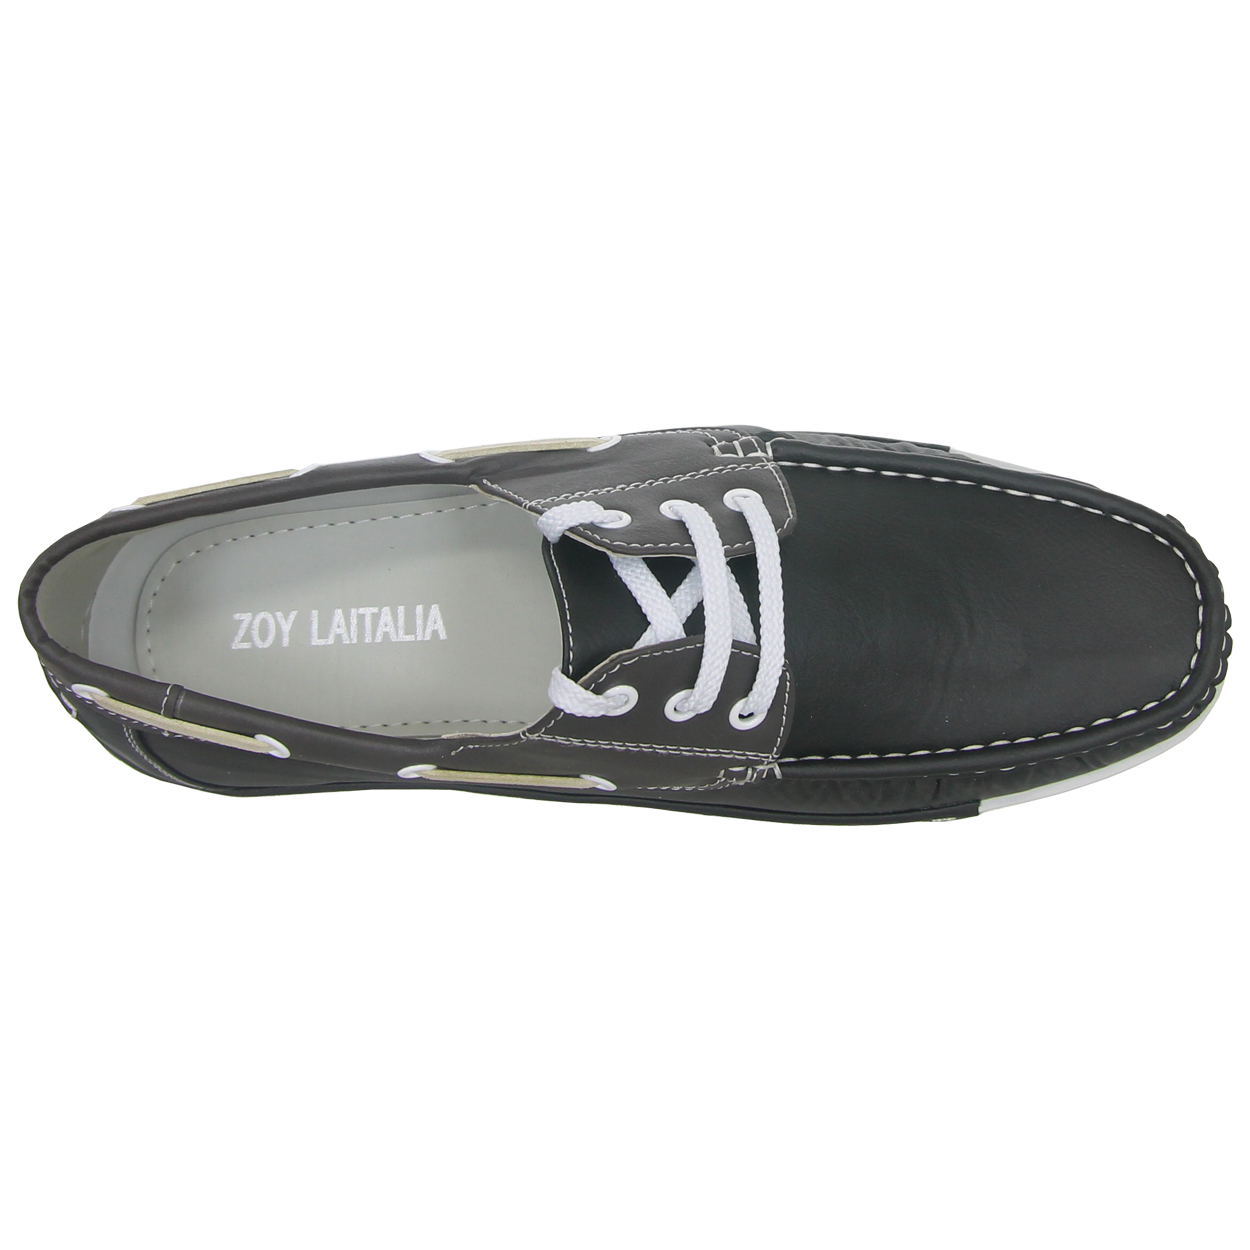 Zoyla-Italia-Men-039-s-Boat-Shoe-by-Alessio-Brand-NEW thumbnail 11